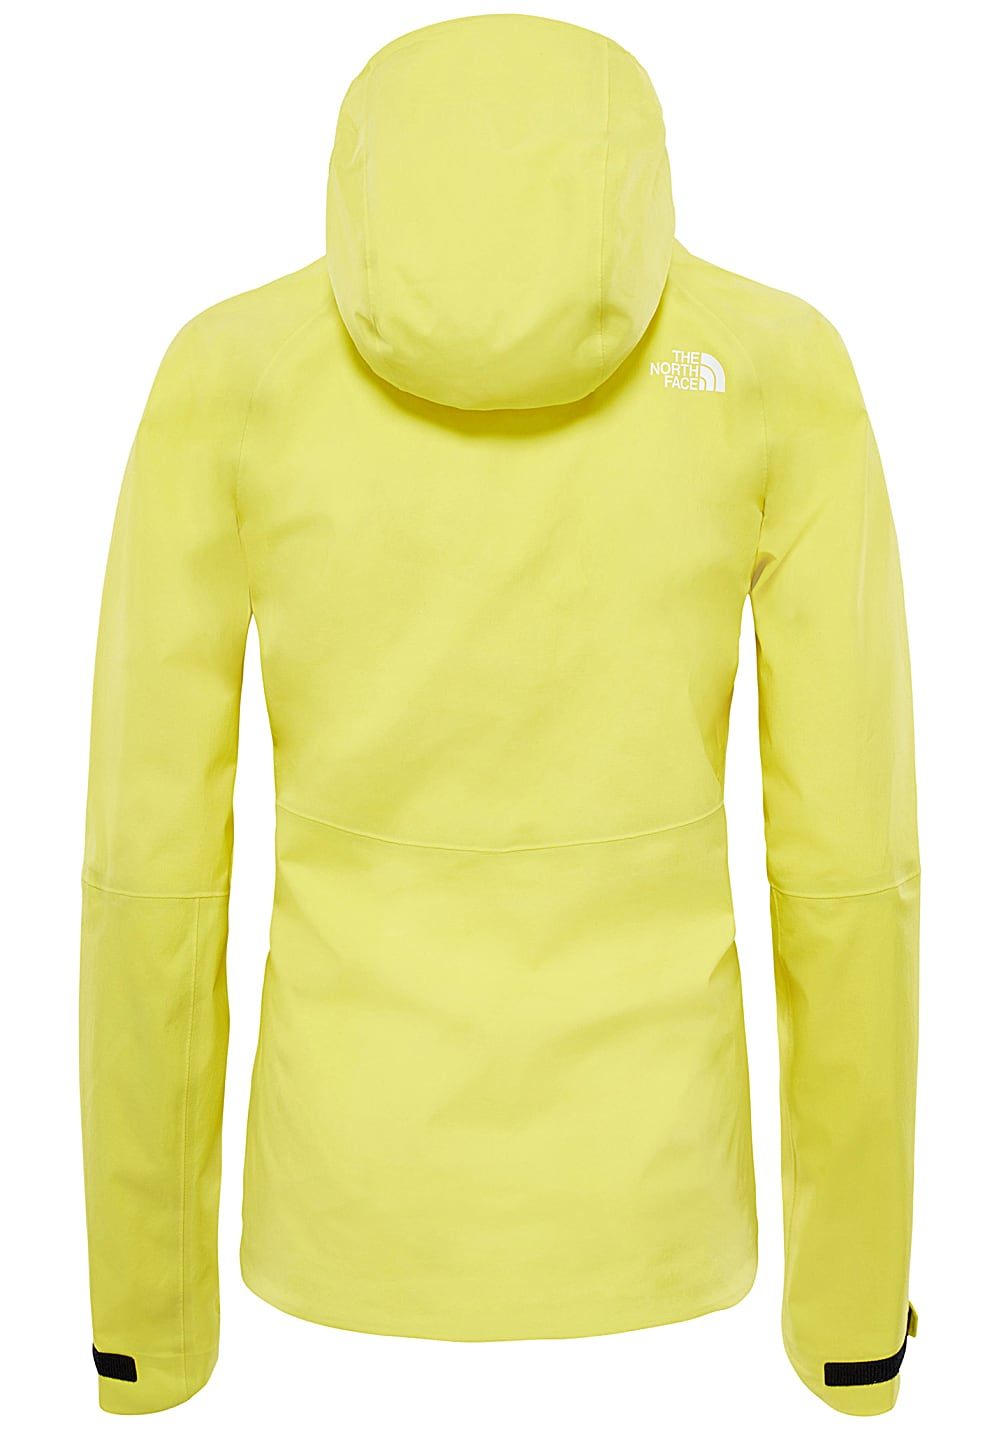 9bf389372 THE NORTH FACE Keiryo Diad II - Outdoor Jacket for Women - Yellow